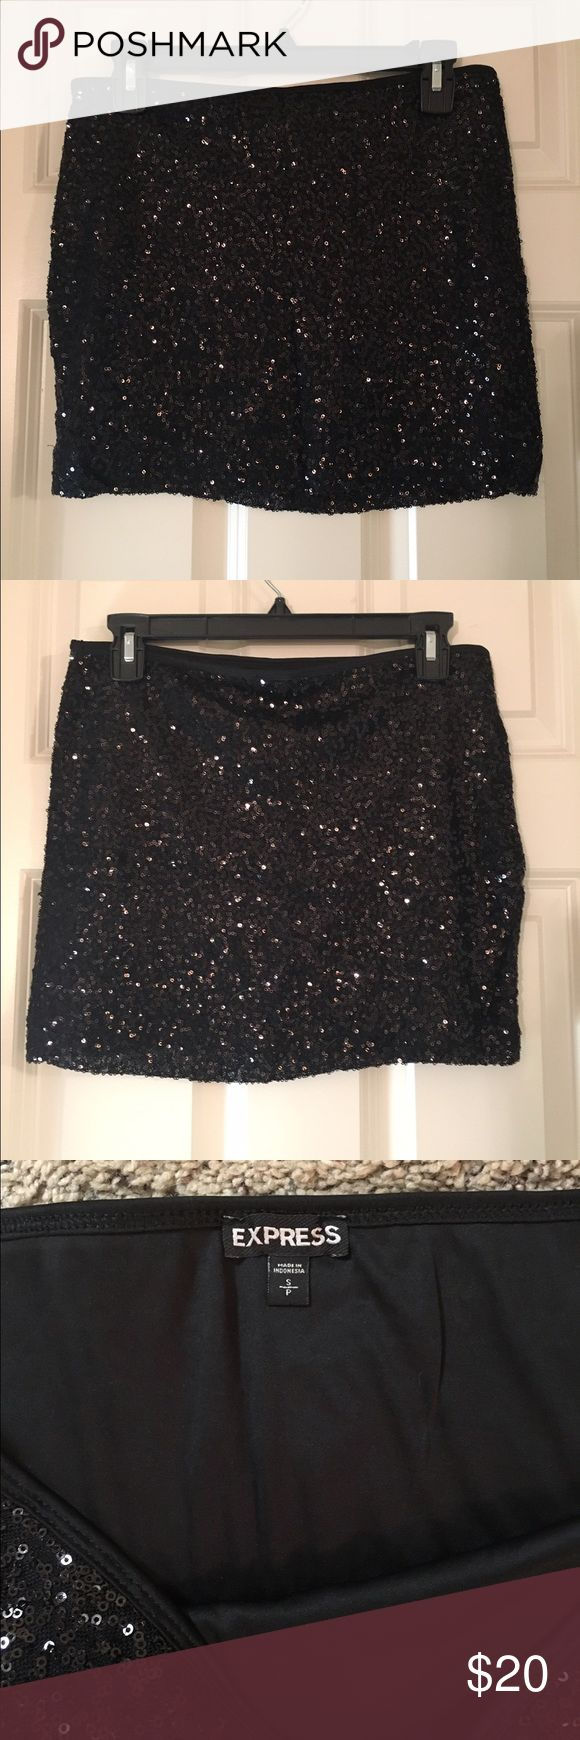 Express sequined mini skirt Express sequined mini skirt. Stretchy material, worn a couple times & still in great condition! Express Skirts Mini